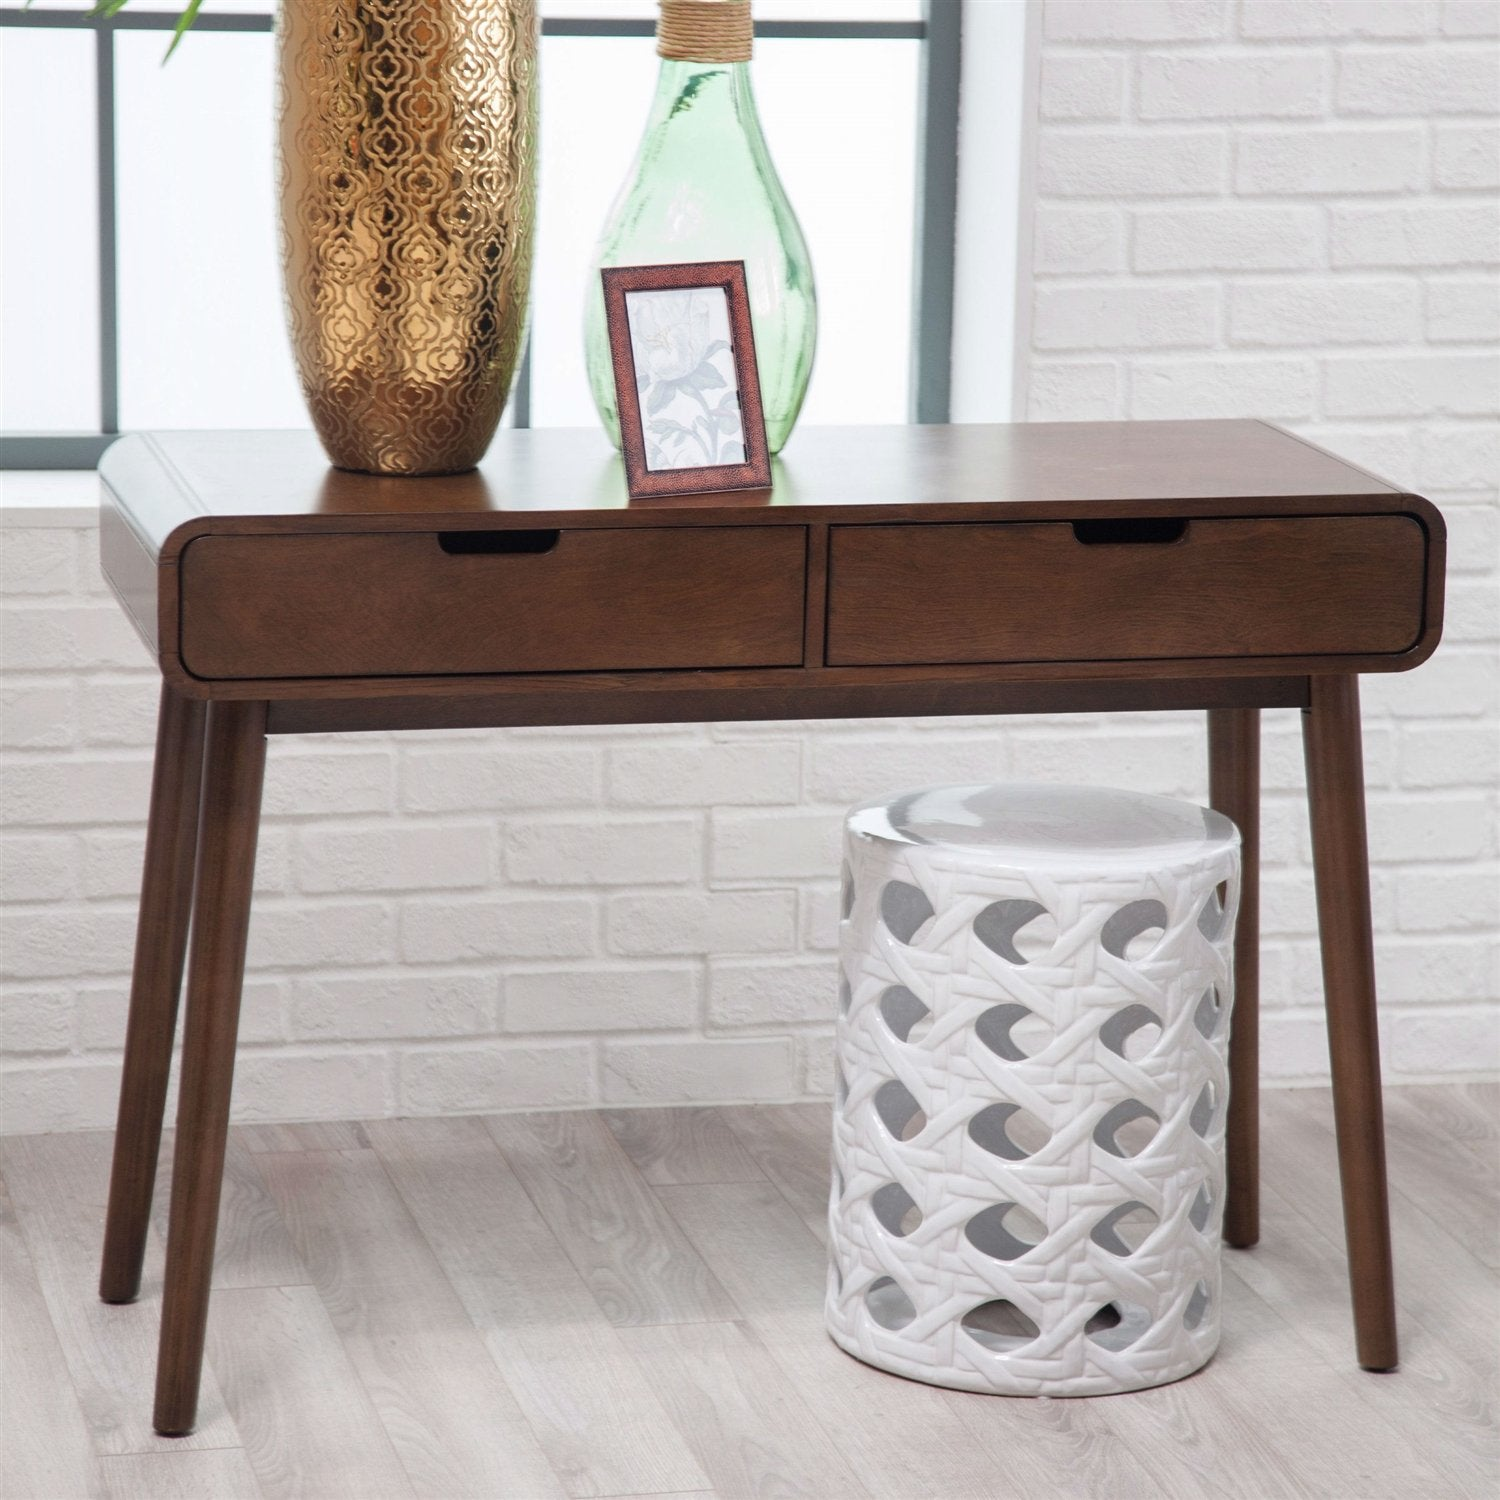 Console sofa tables modern classic solid wood console sofa table in walnut wood finish geotapseo Images